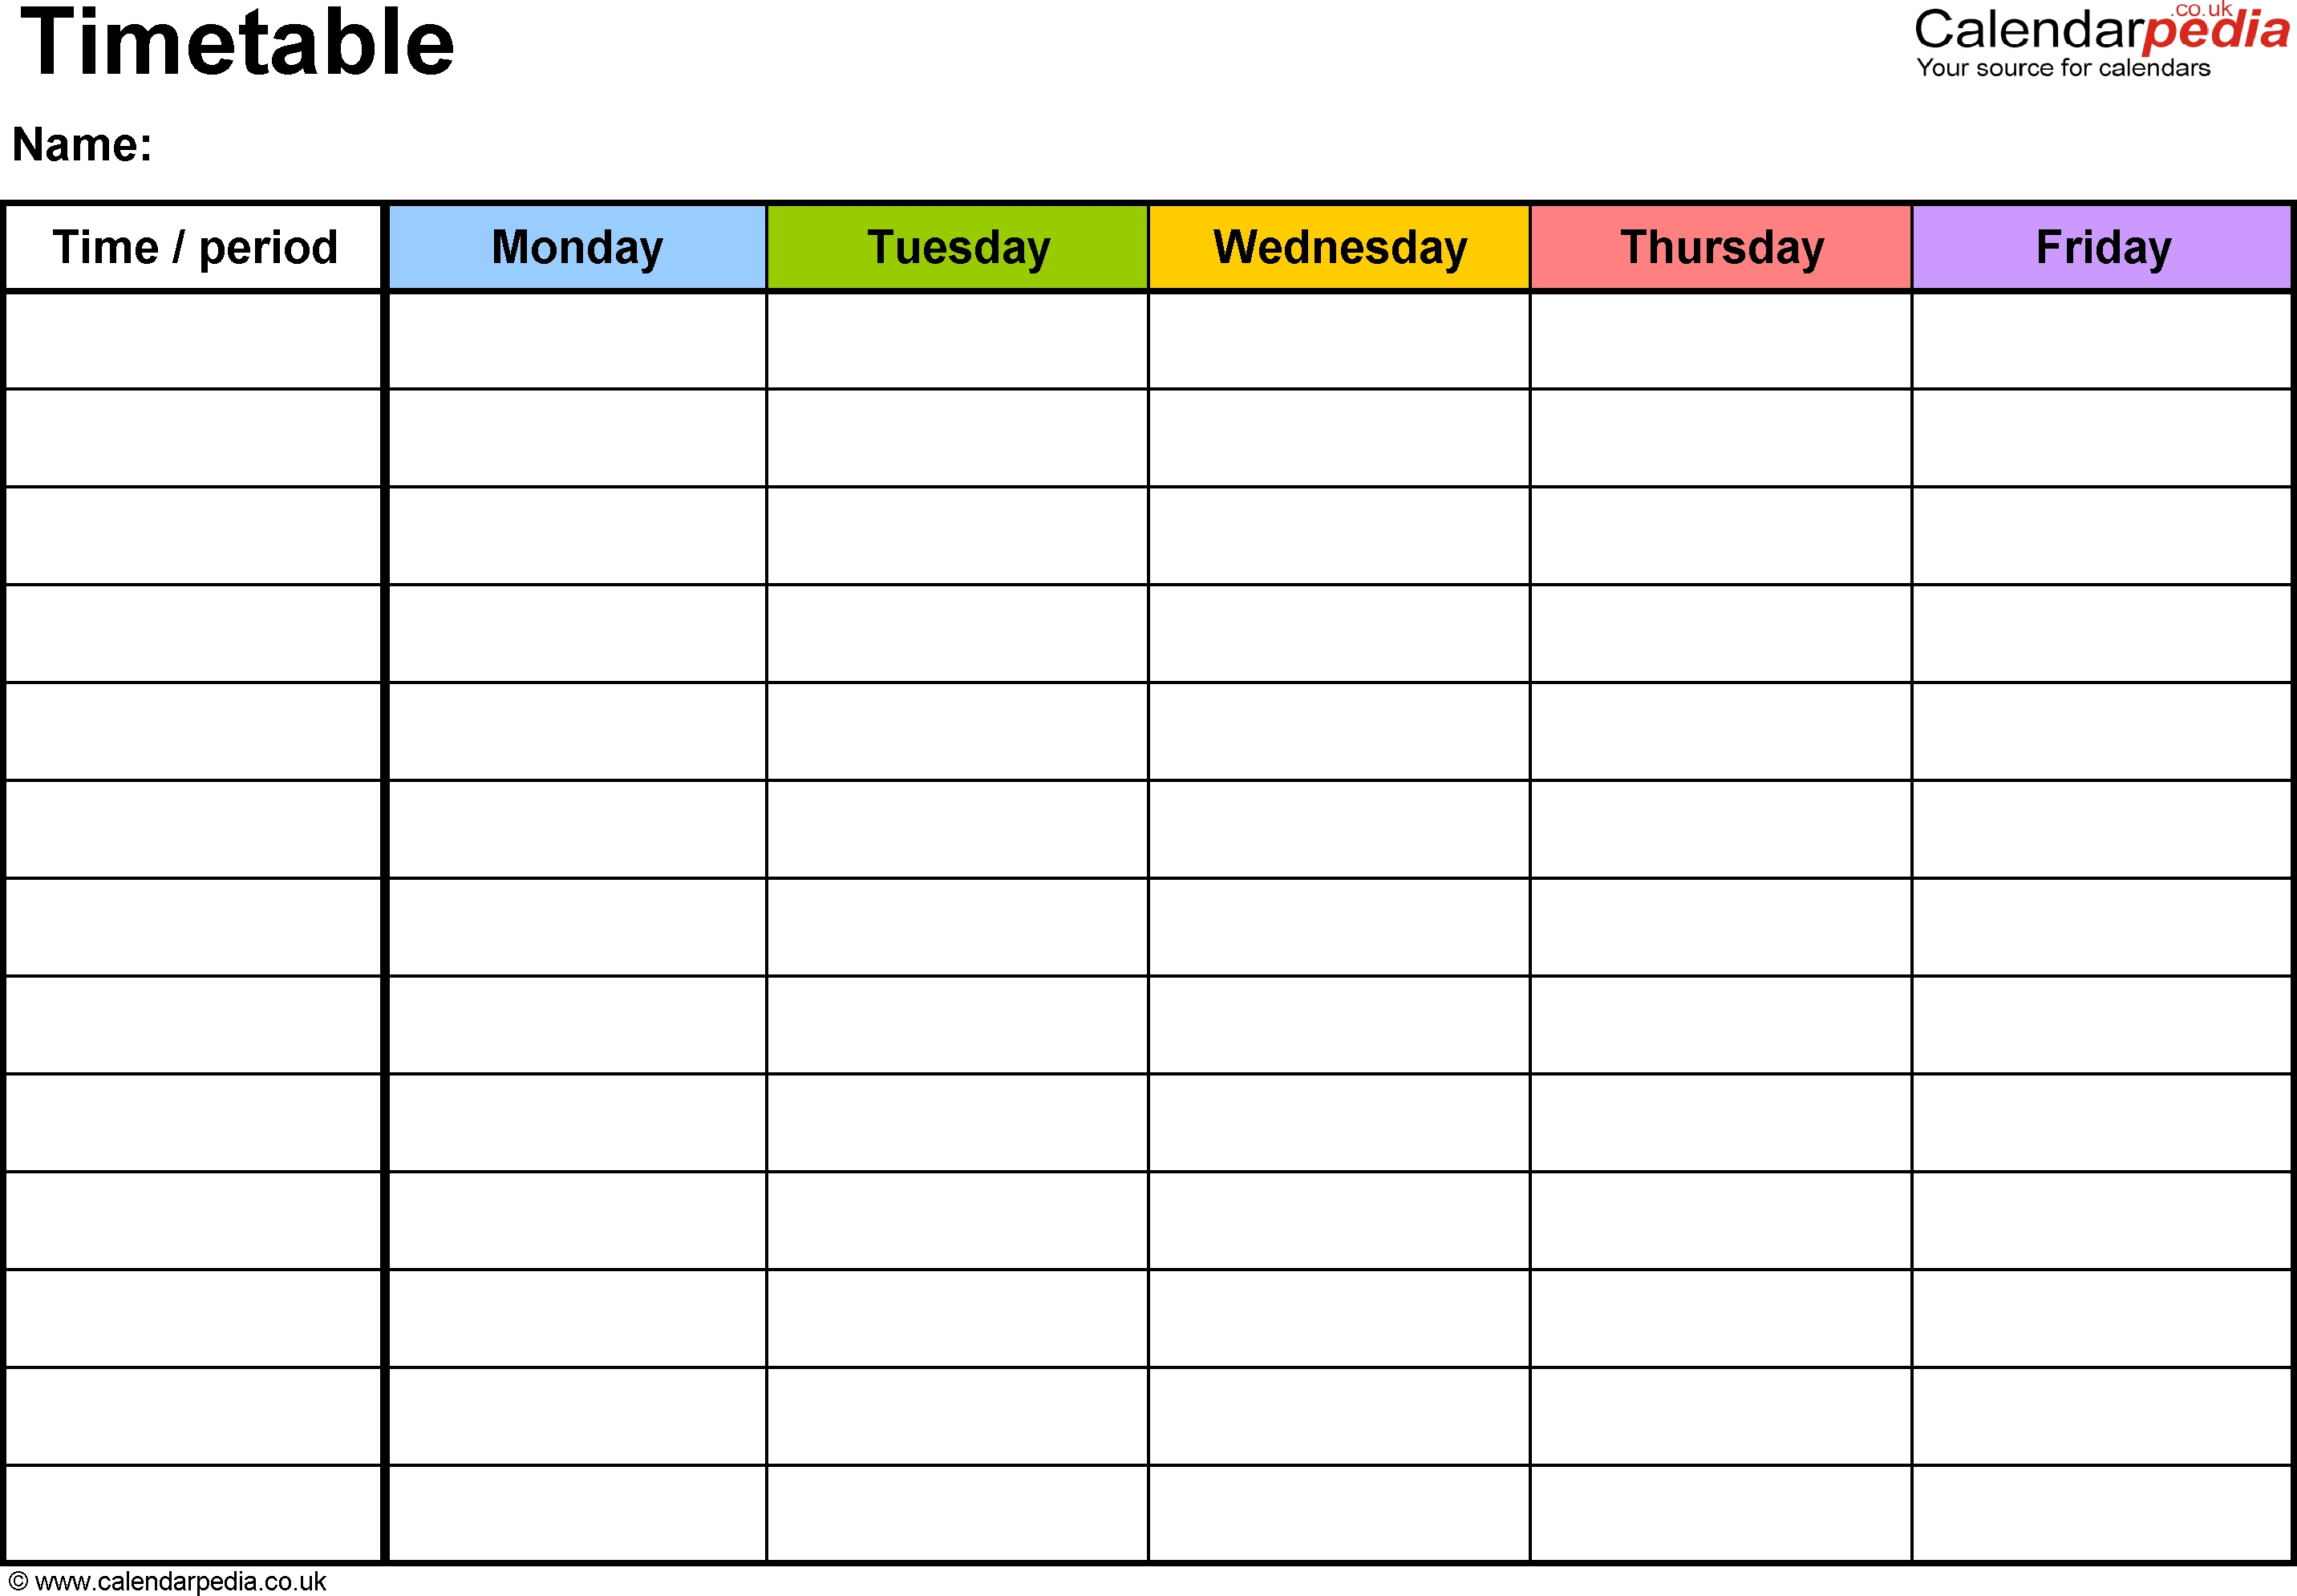 Pdf Timetable Template 2: Landscape Format, A4, 1 Page-Blank Monday Through Friday Calendar